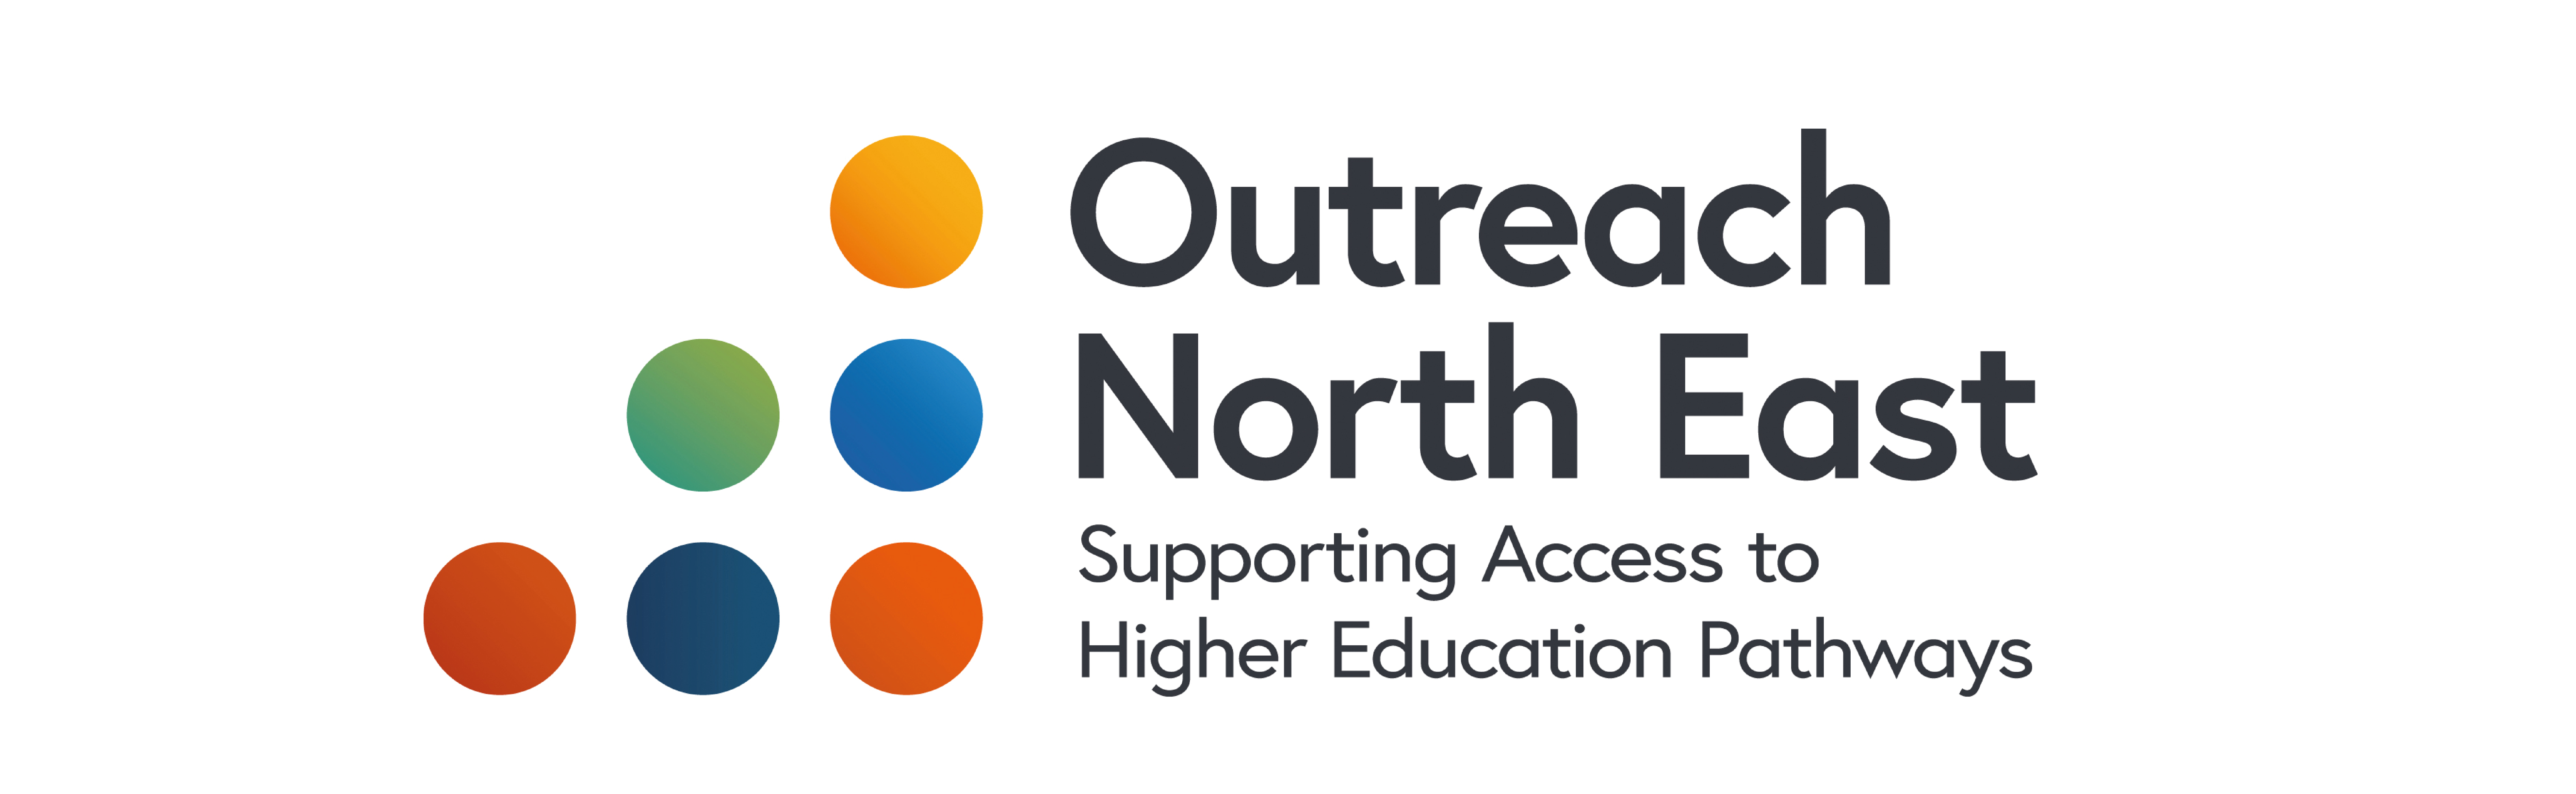 Outreach North East